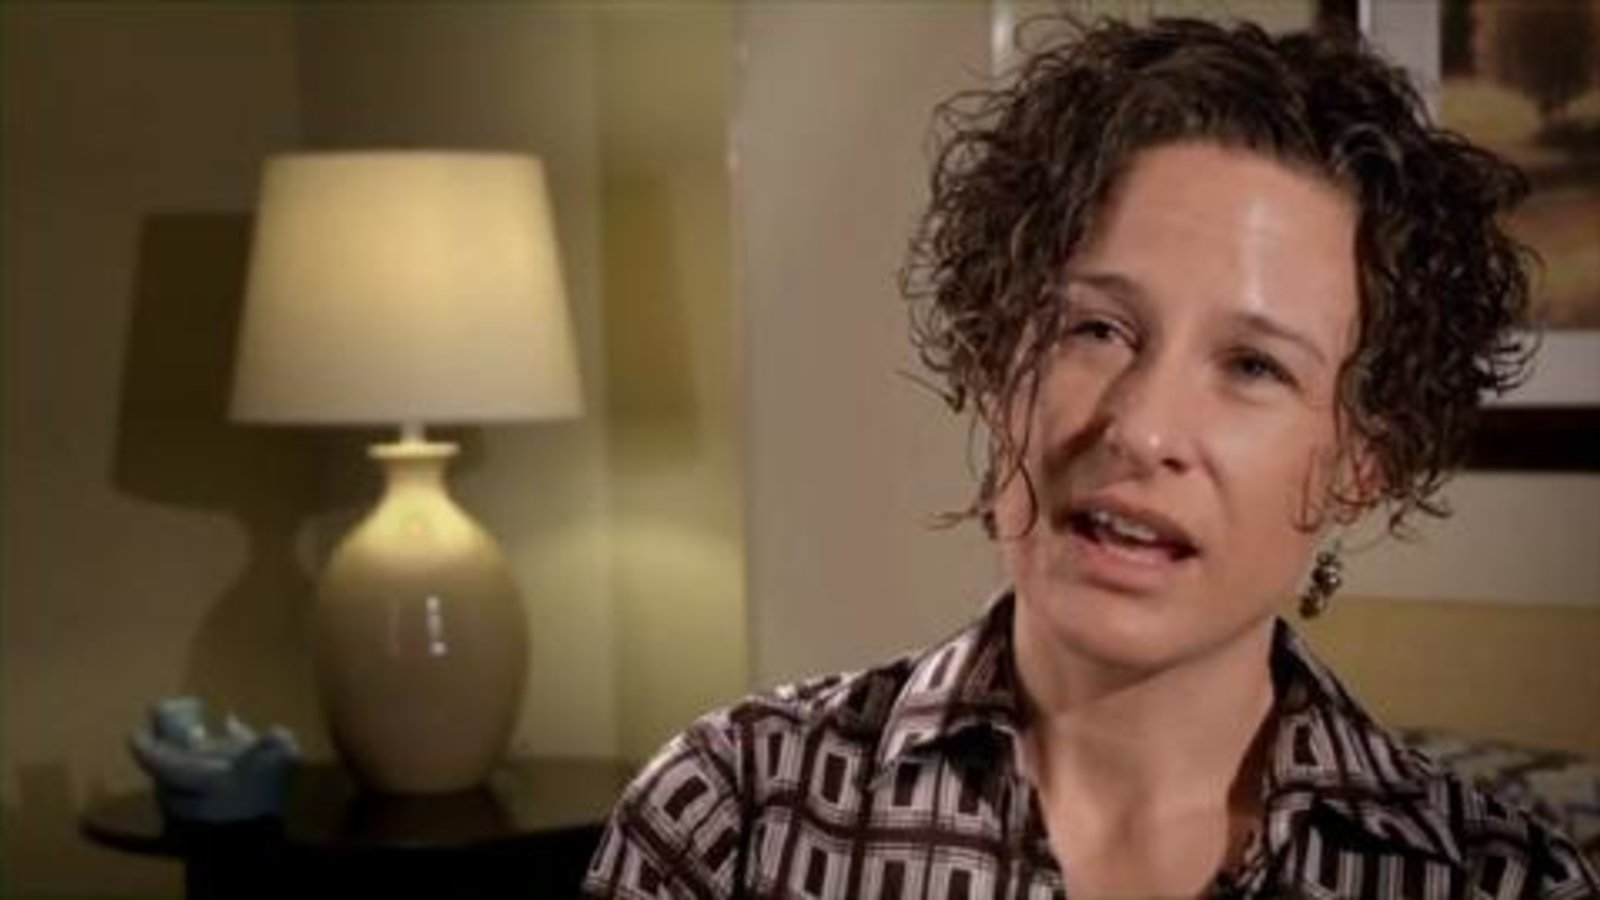 Recovering - Anorexia Nervosa and Bulimia Nervosa